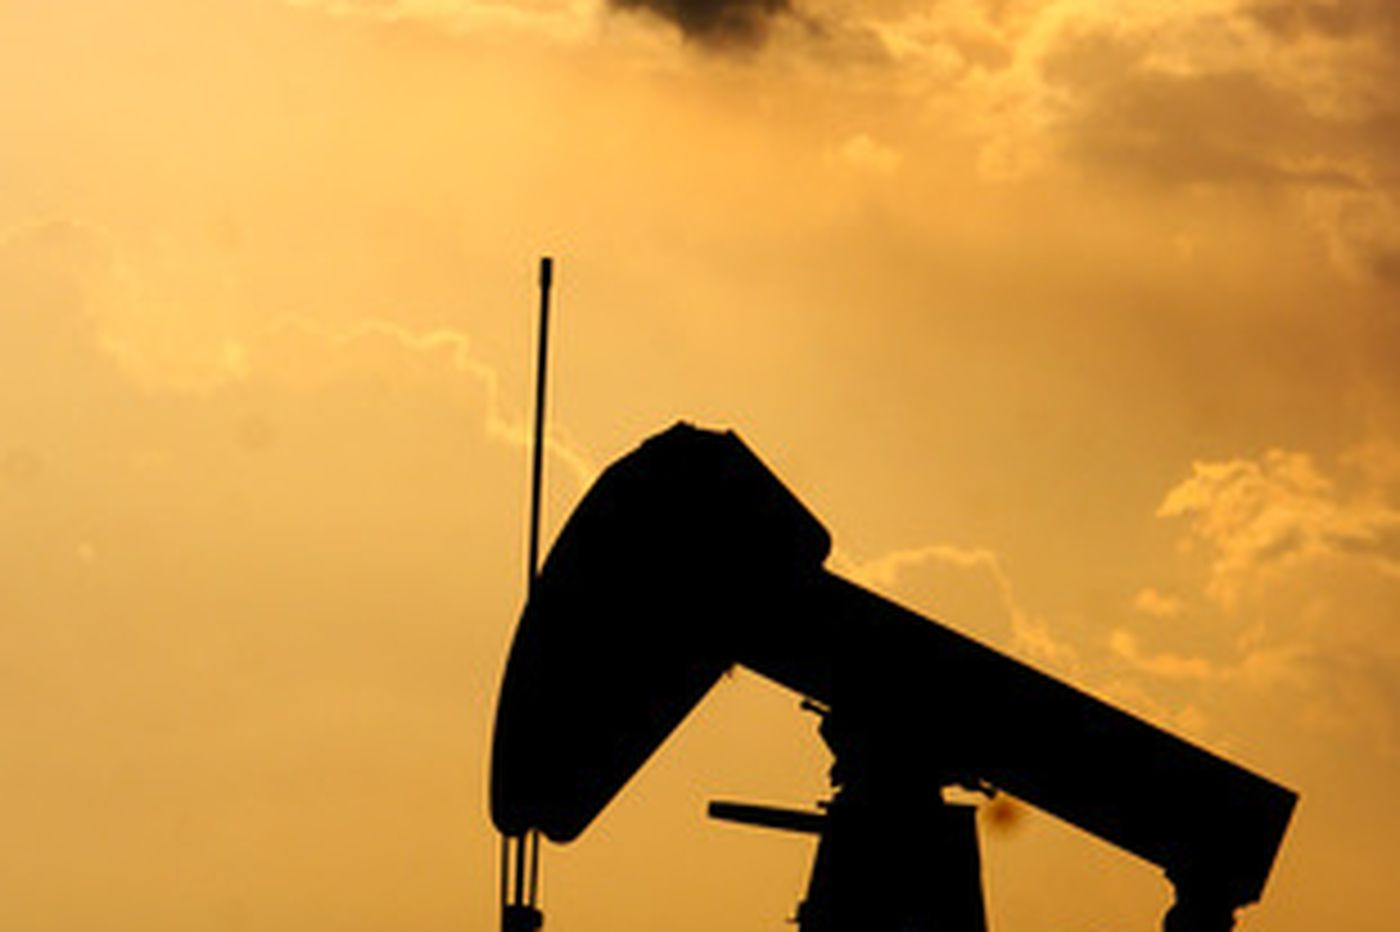 PhillyDeals: PhillyDeal: Oil industry predicts $1 gasoline soon